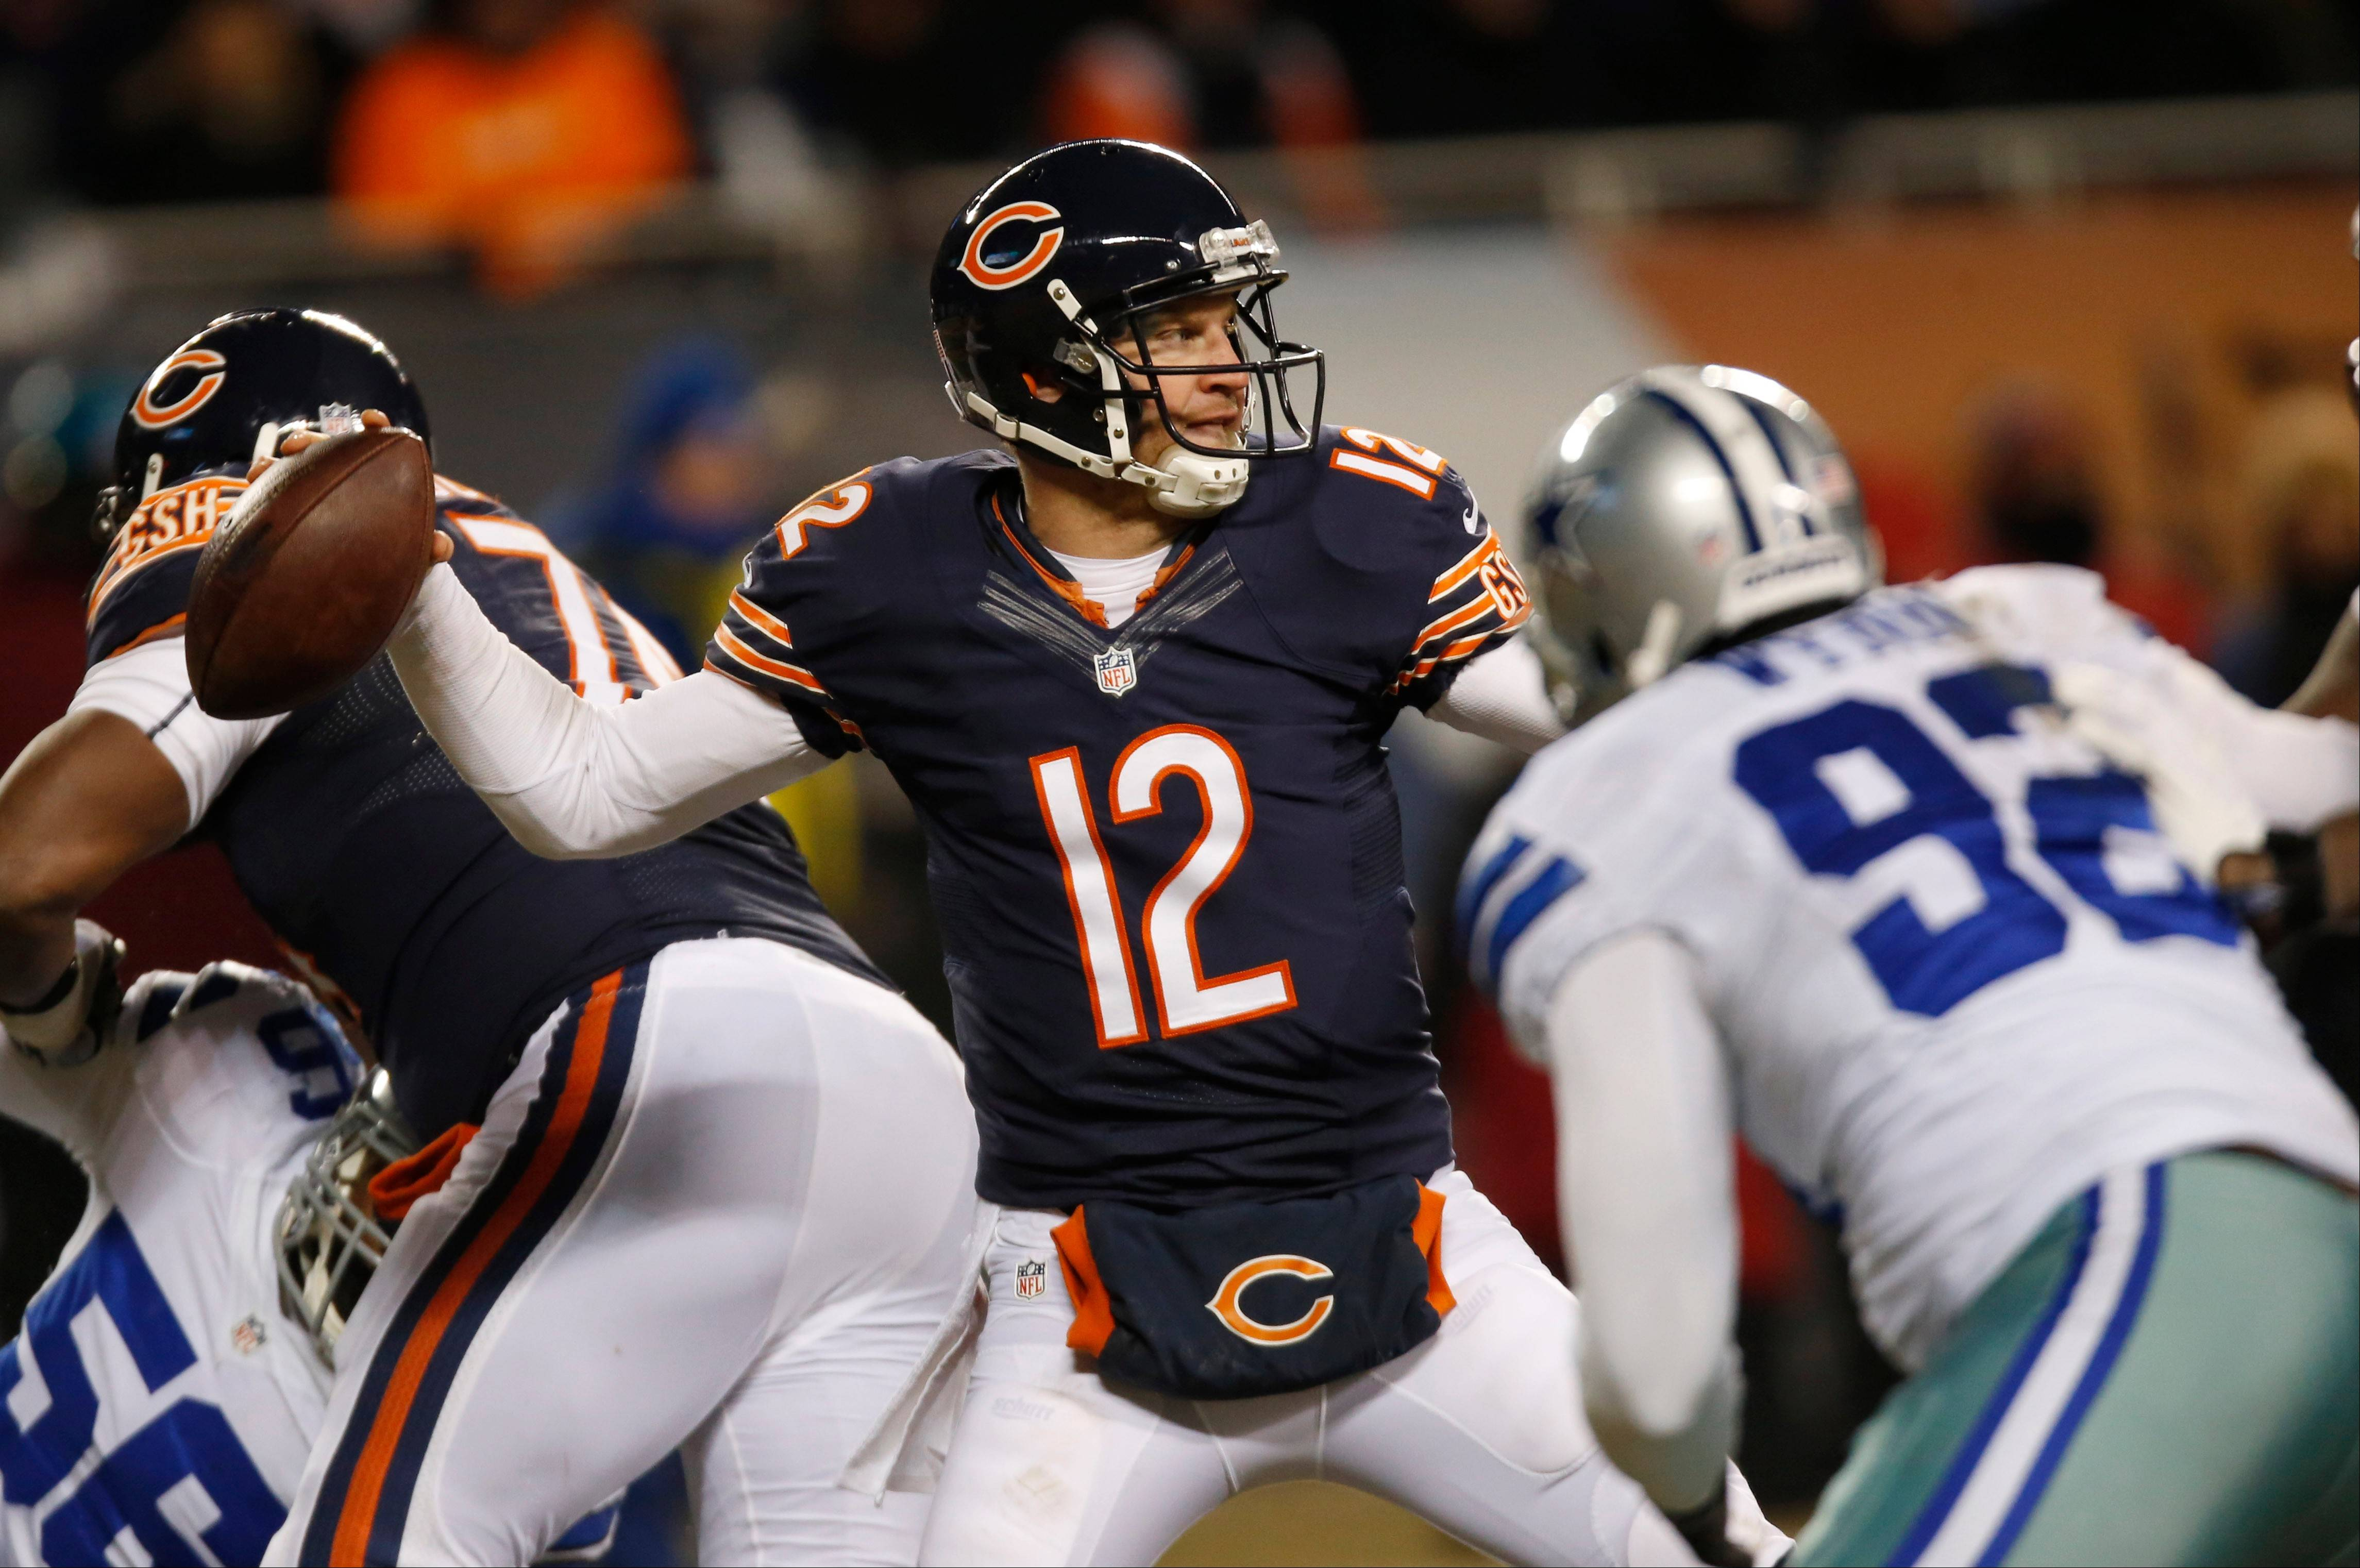 Bears quarterback Josh McCown fires a pass against the Dallas Cowboys last season. McCown is leaving the Bears after signing a two-year deal with Lovie Smith and the Tampa Bay Buccaneers.